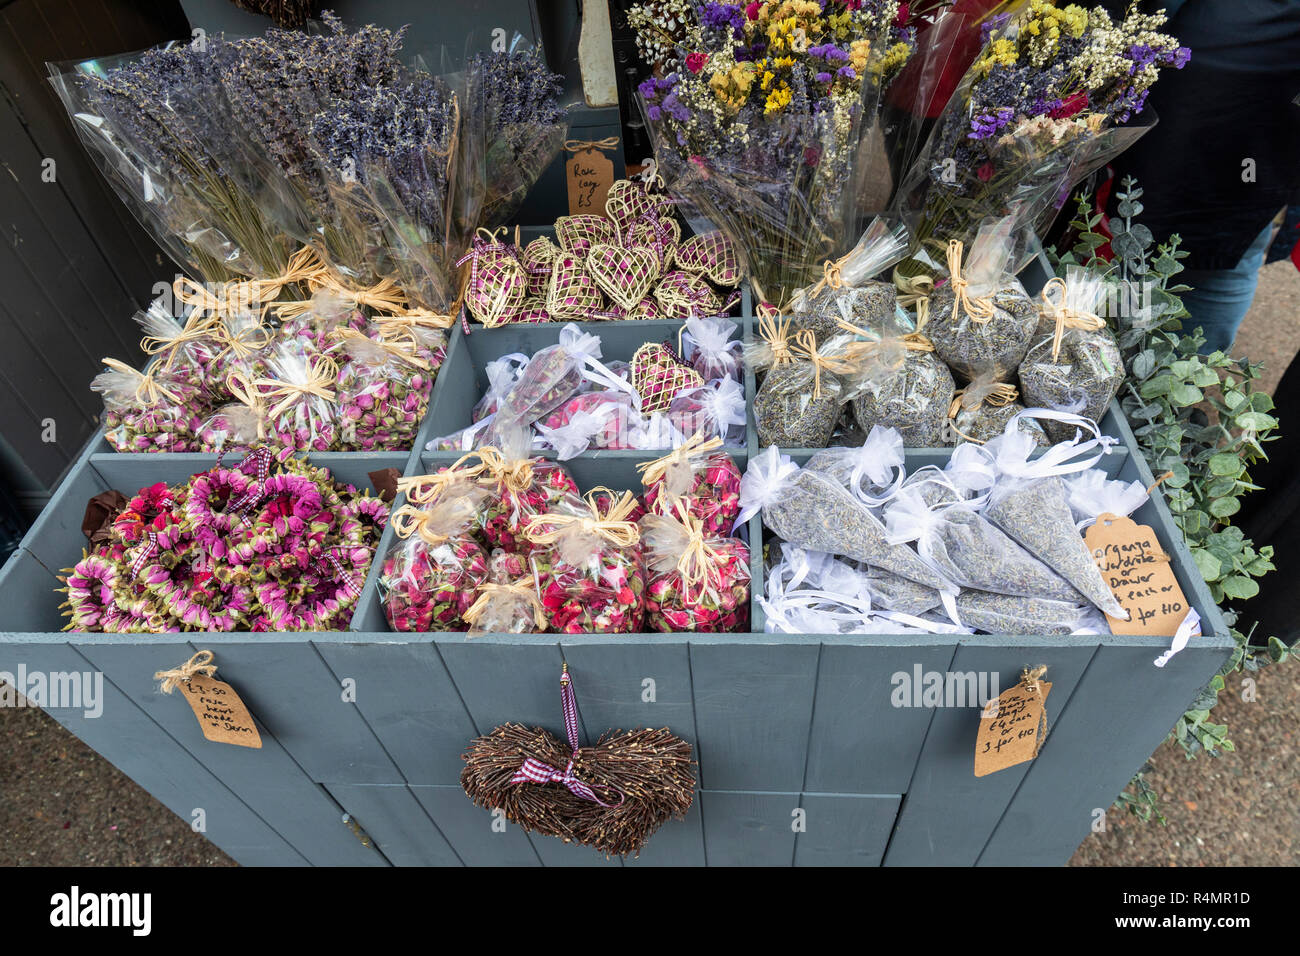 Scented dried flower products for sale at Bath Christmas Market, Bath, UK - Stock Image